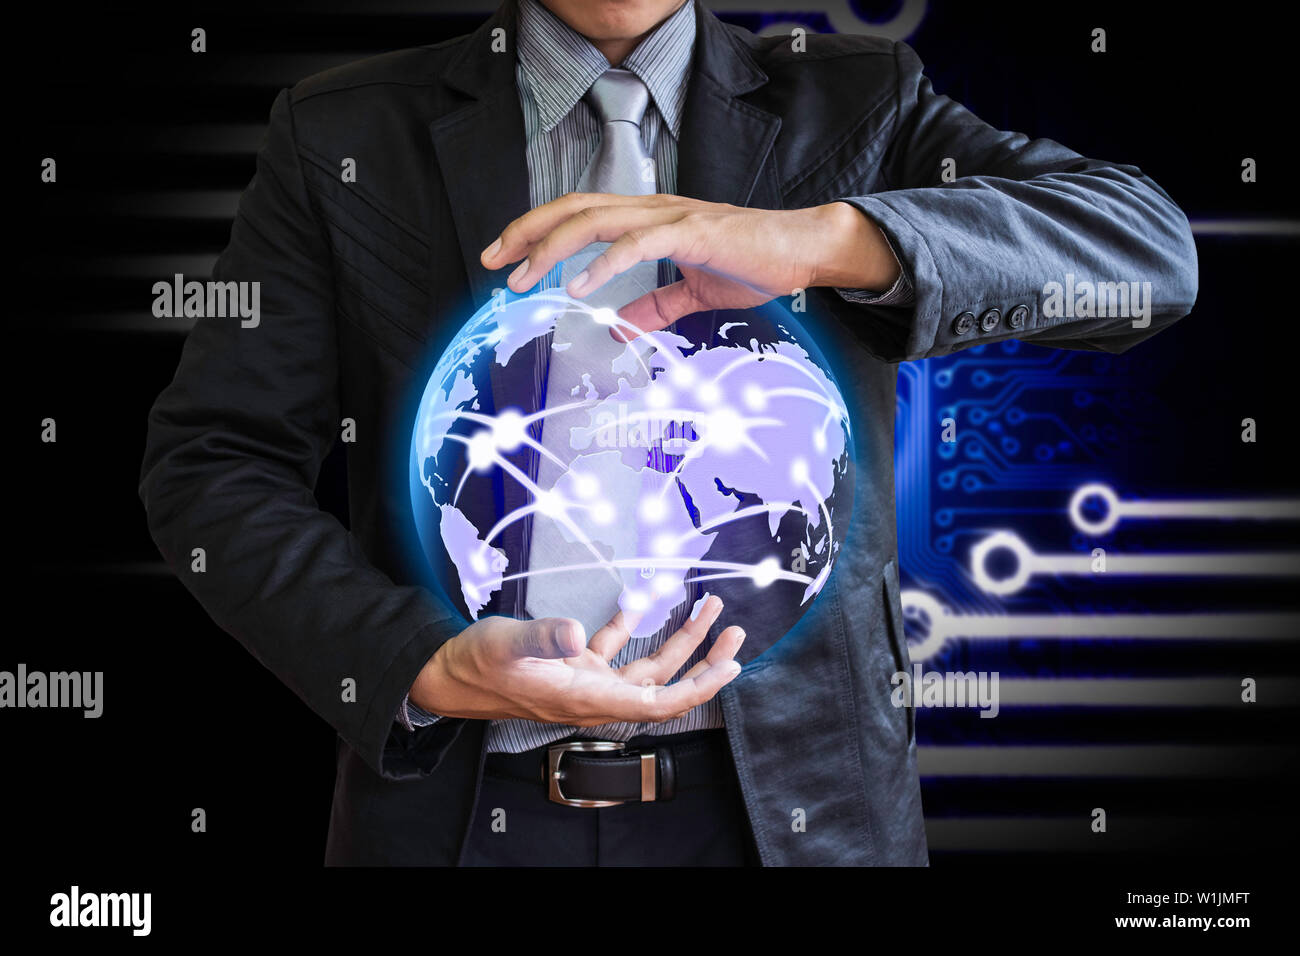 Business technology leader - Stock Image